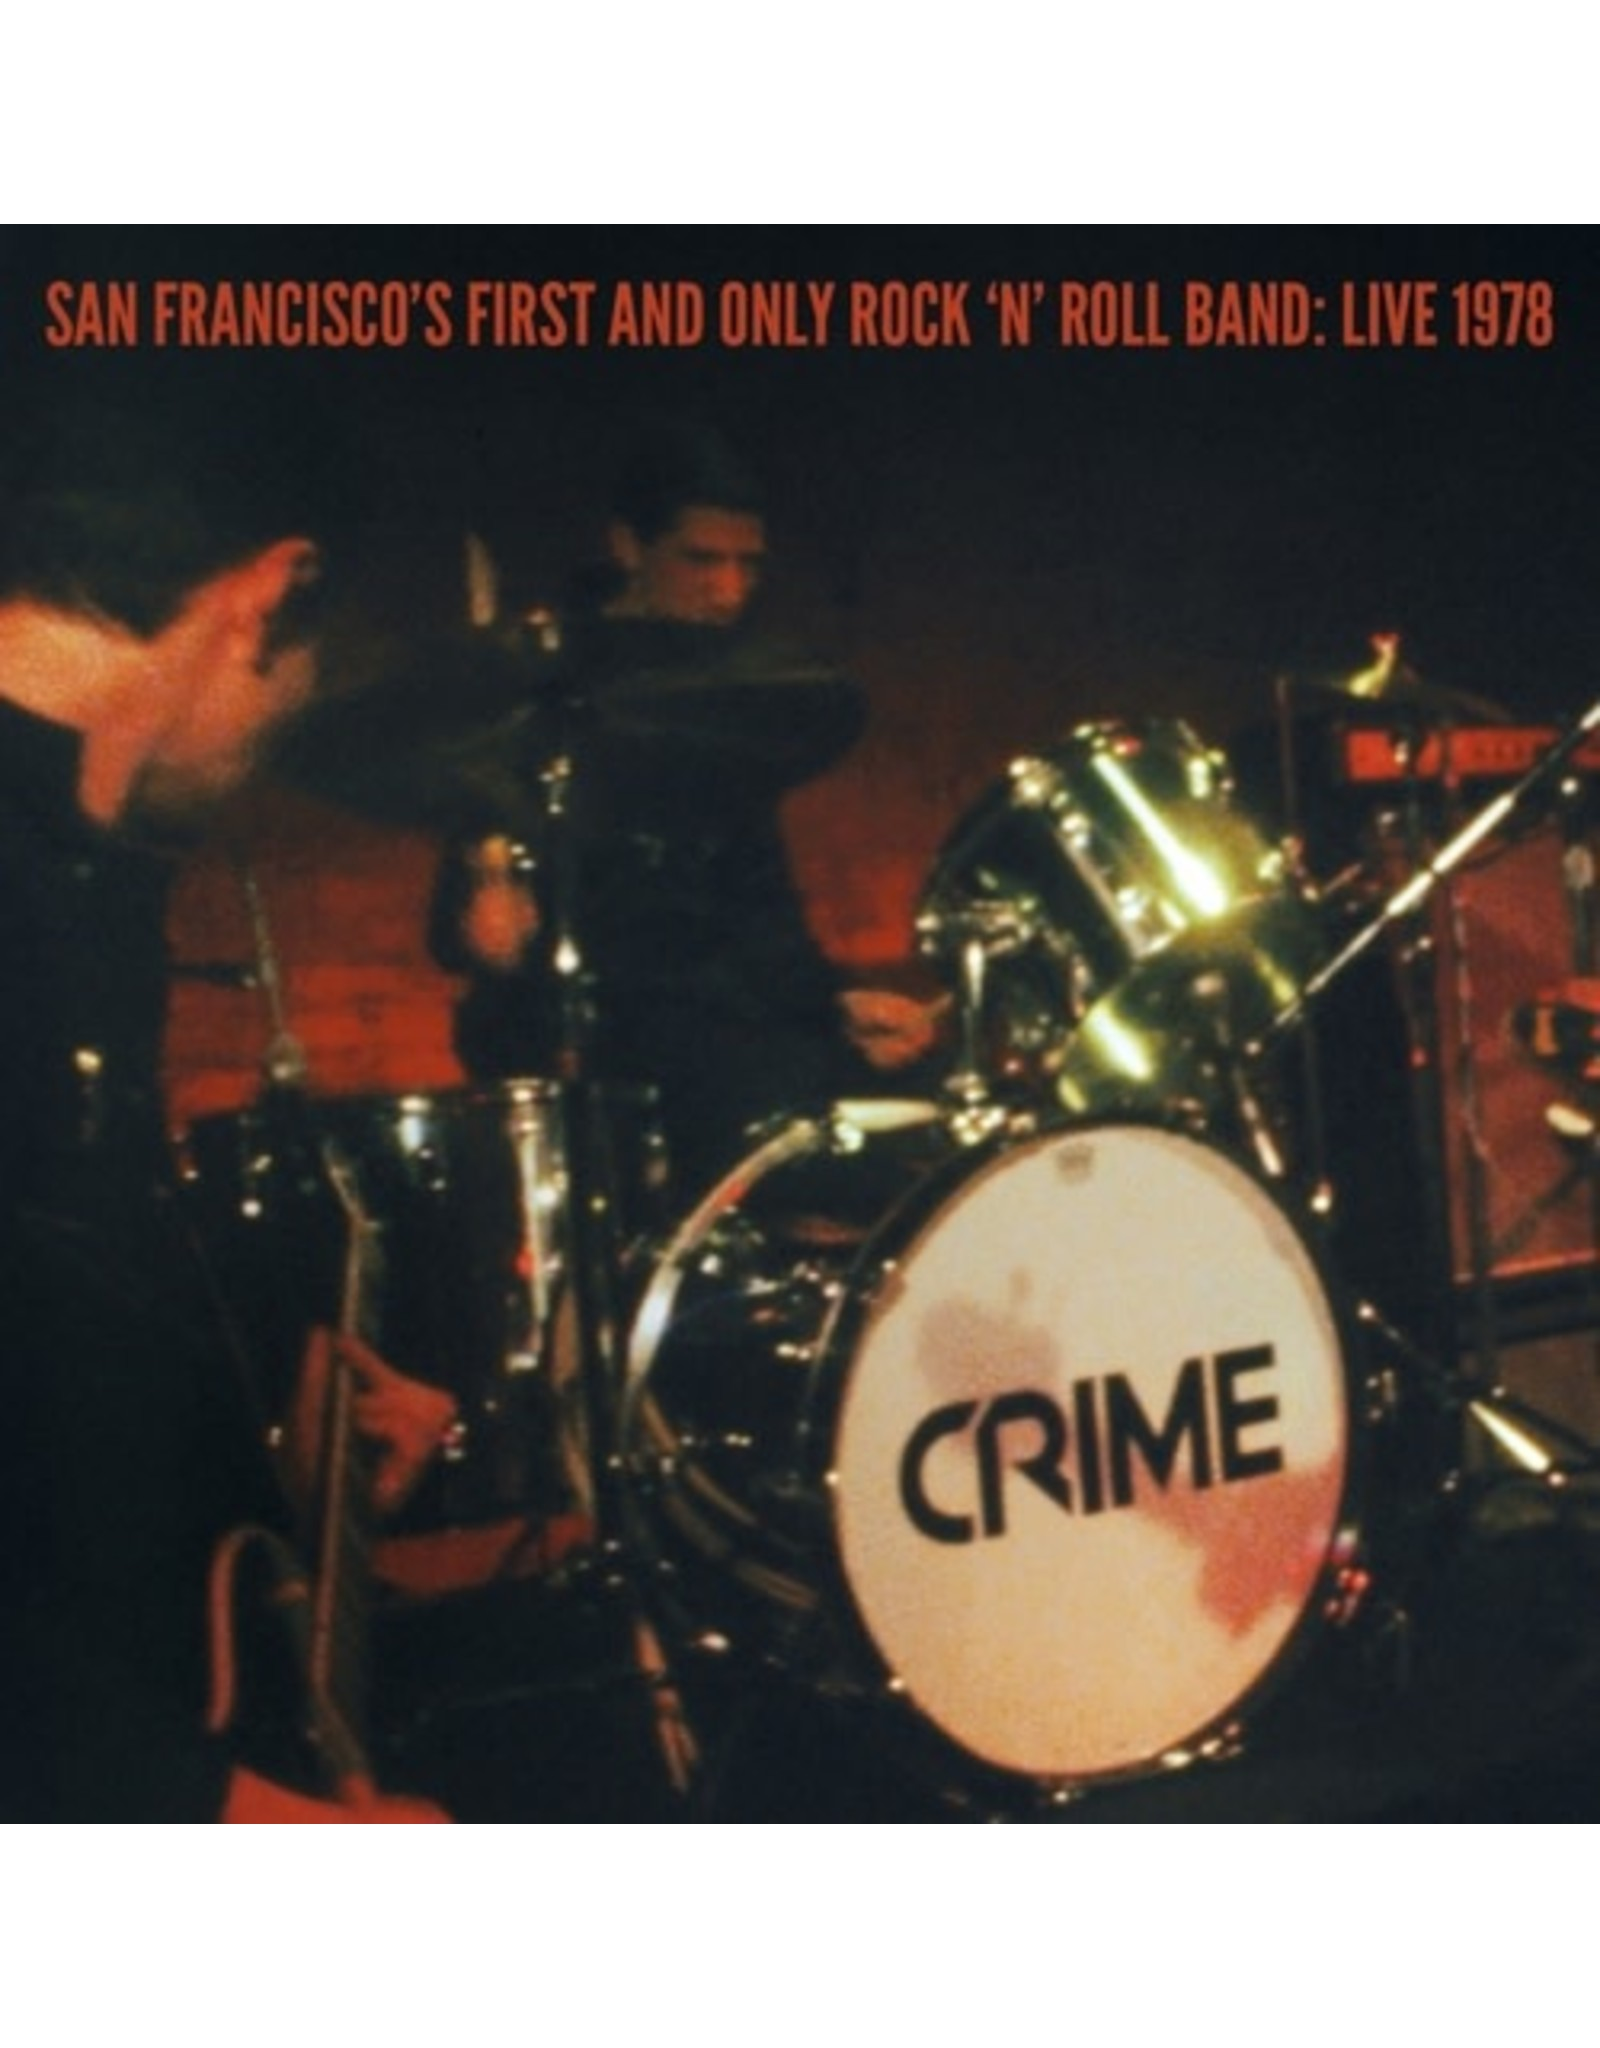 """New Vinyl CRIME - San Francisco's First And Only Rock 'N' Roll Band: Live 1978 2x7""""+DVD"""